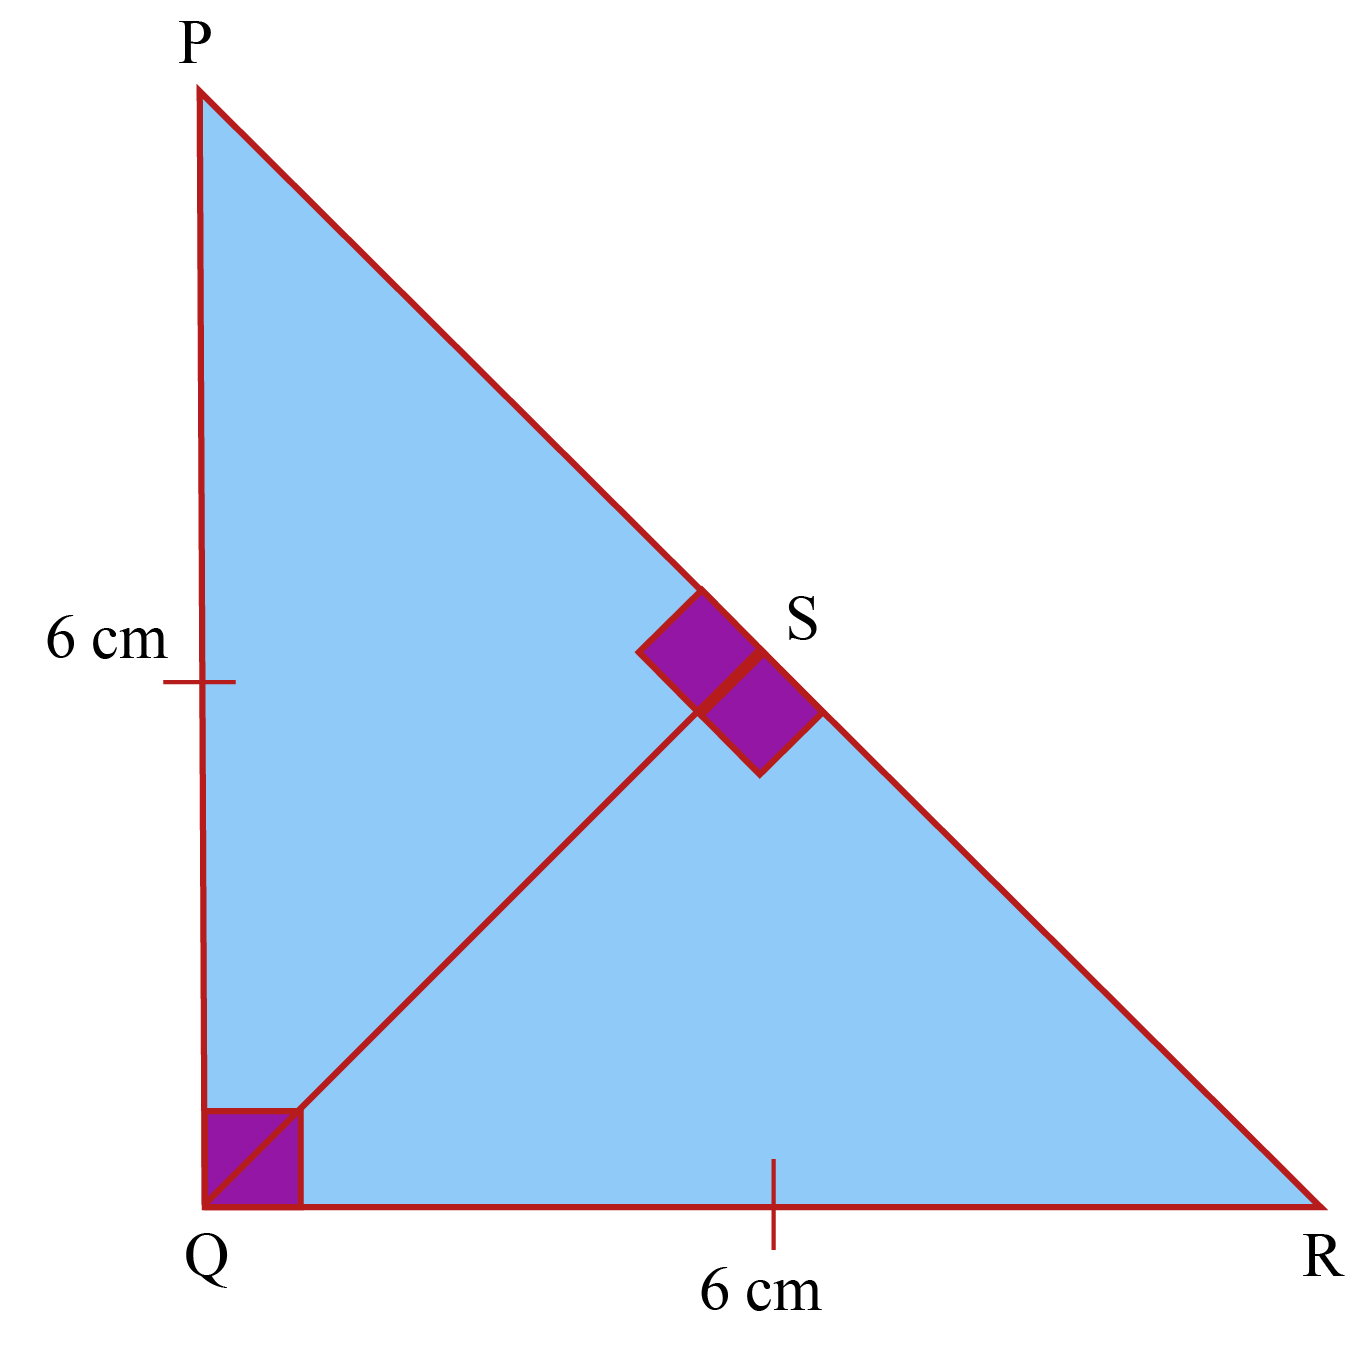 RIght isosceles triangle solved example